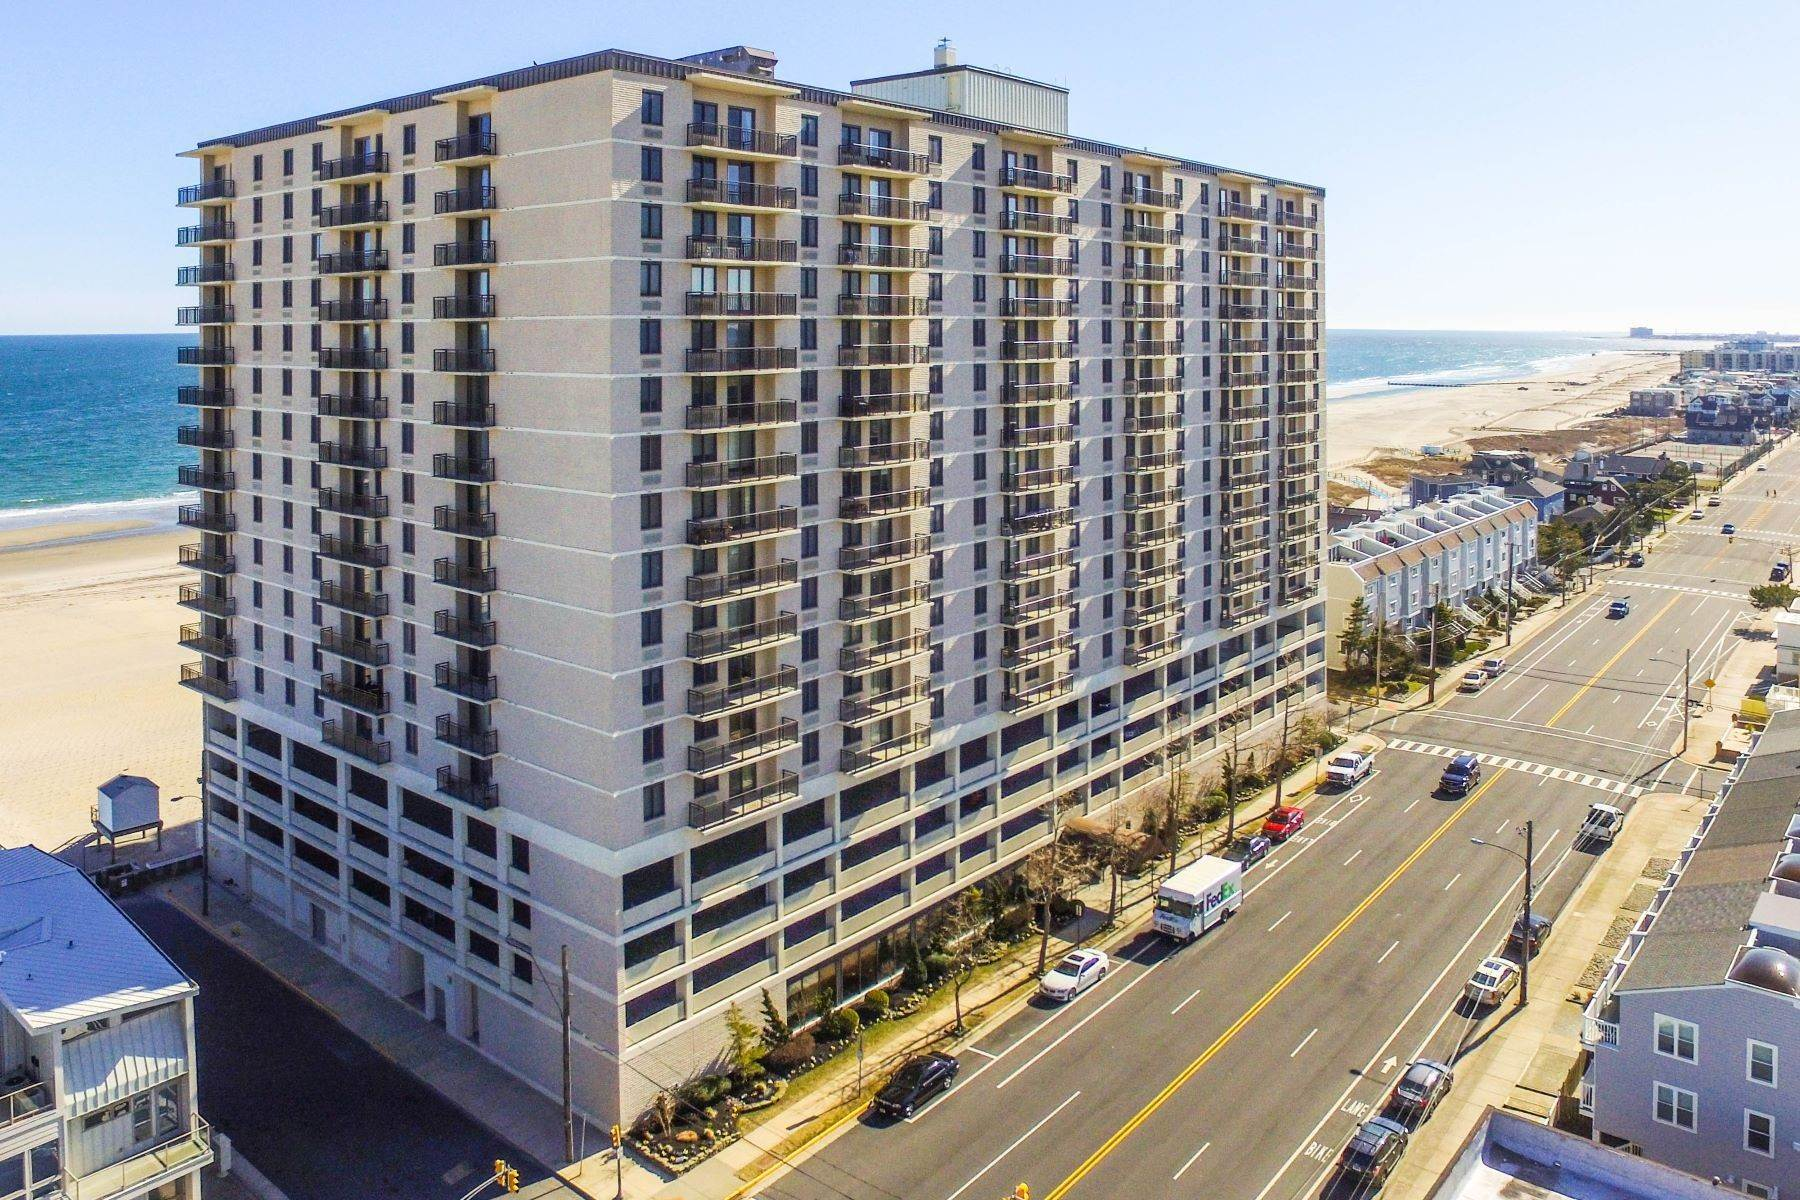 Condominiums for Sale at 9600 Atlantic Avenue, #1005, Margate, New Jersey 08402 United States